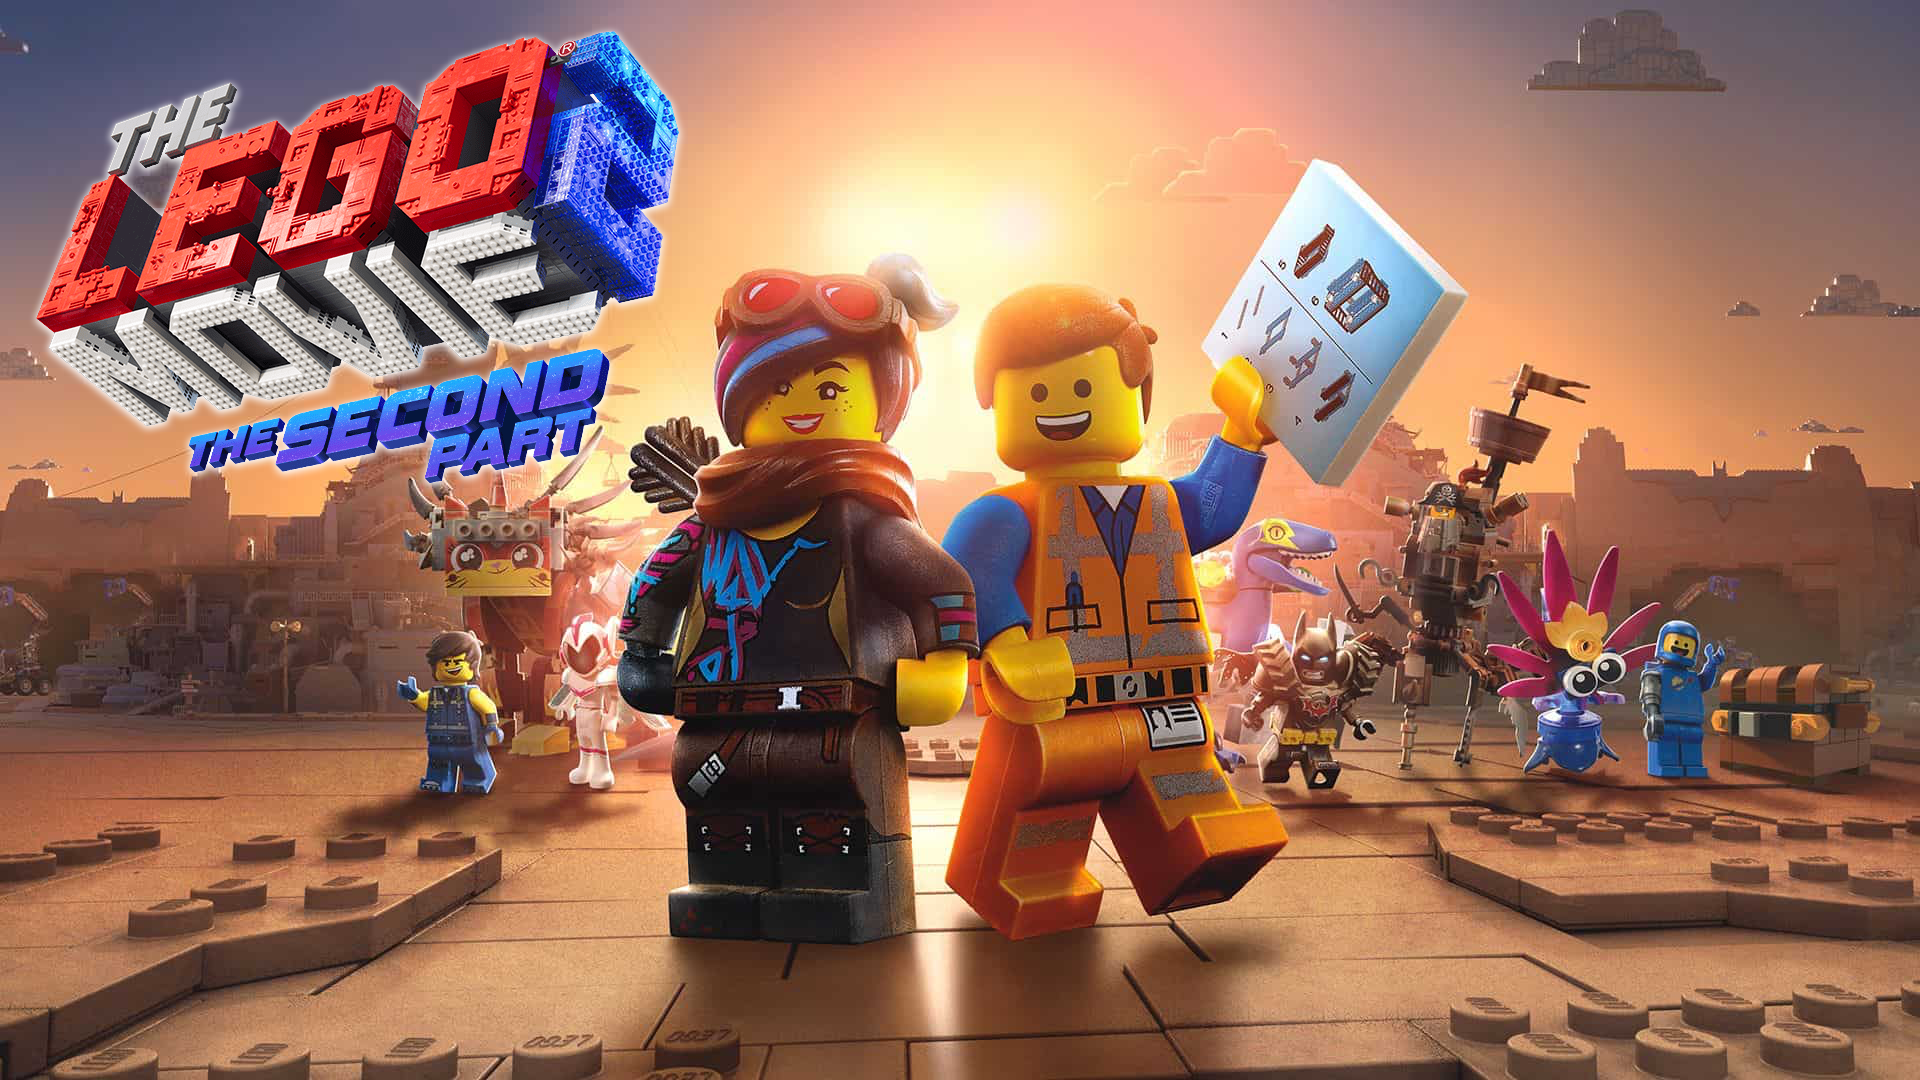 The LEGO Movie 2: The Second Part - MOVIE REVIEW screen capture